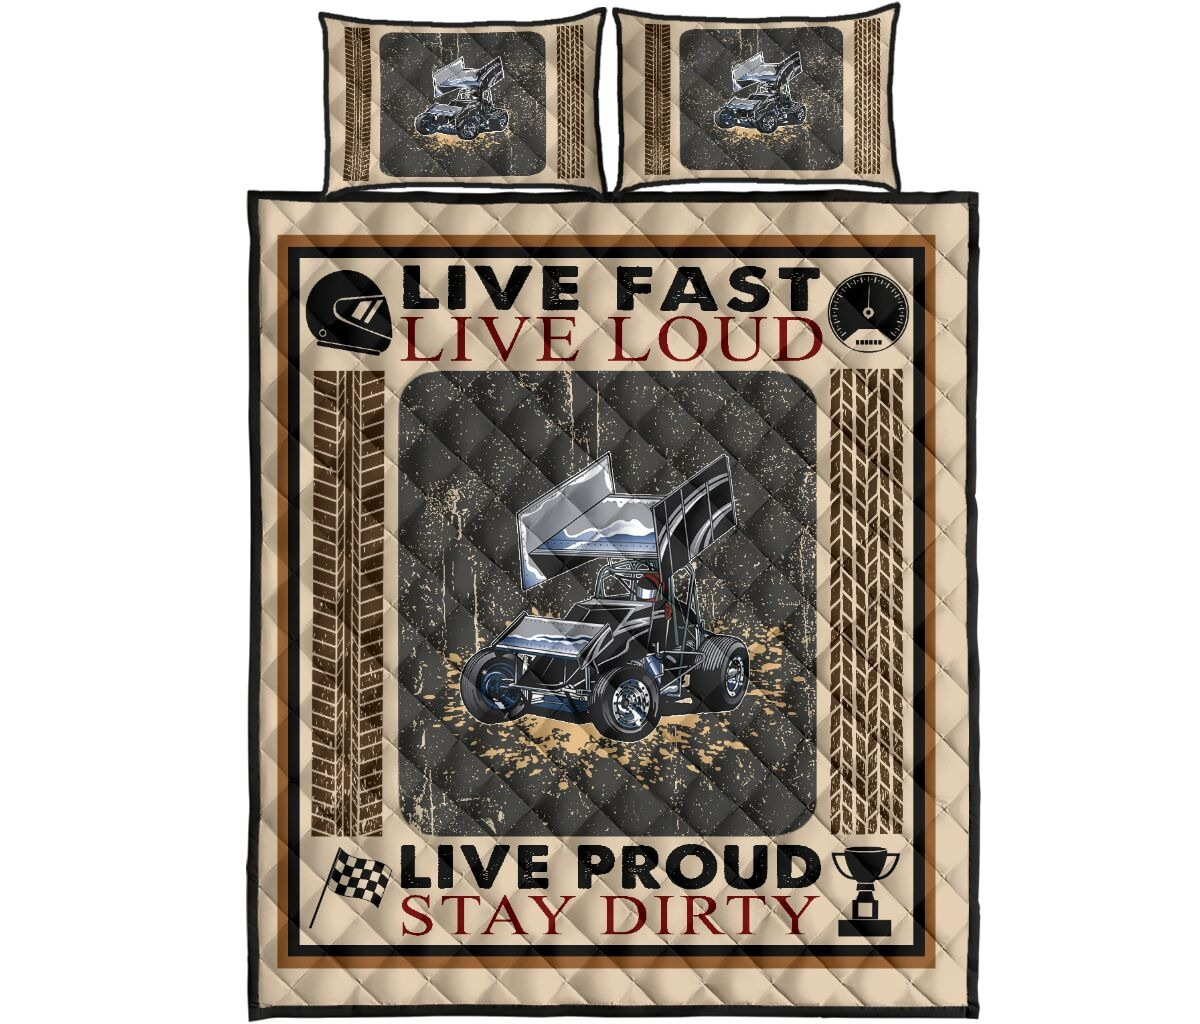 Car racing Live fast live loud live proud stay dirty bedding set4